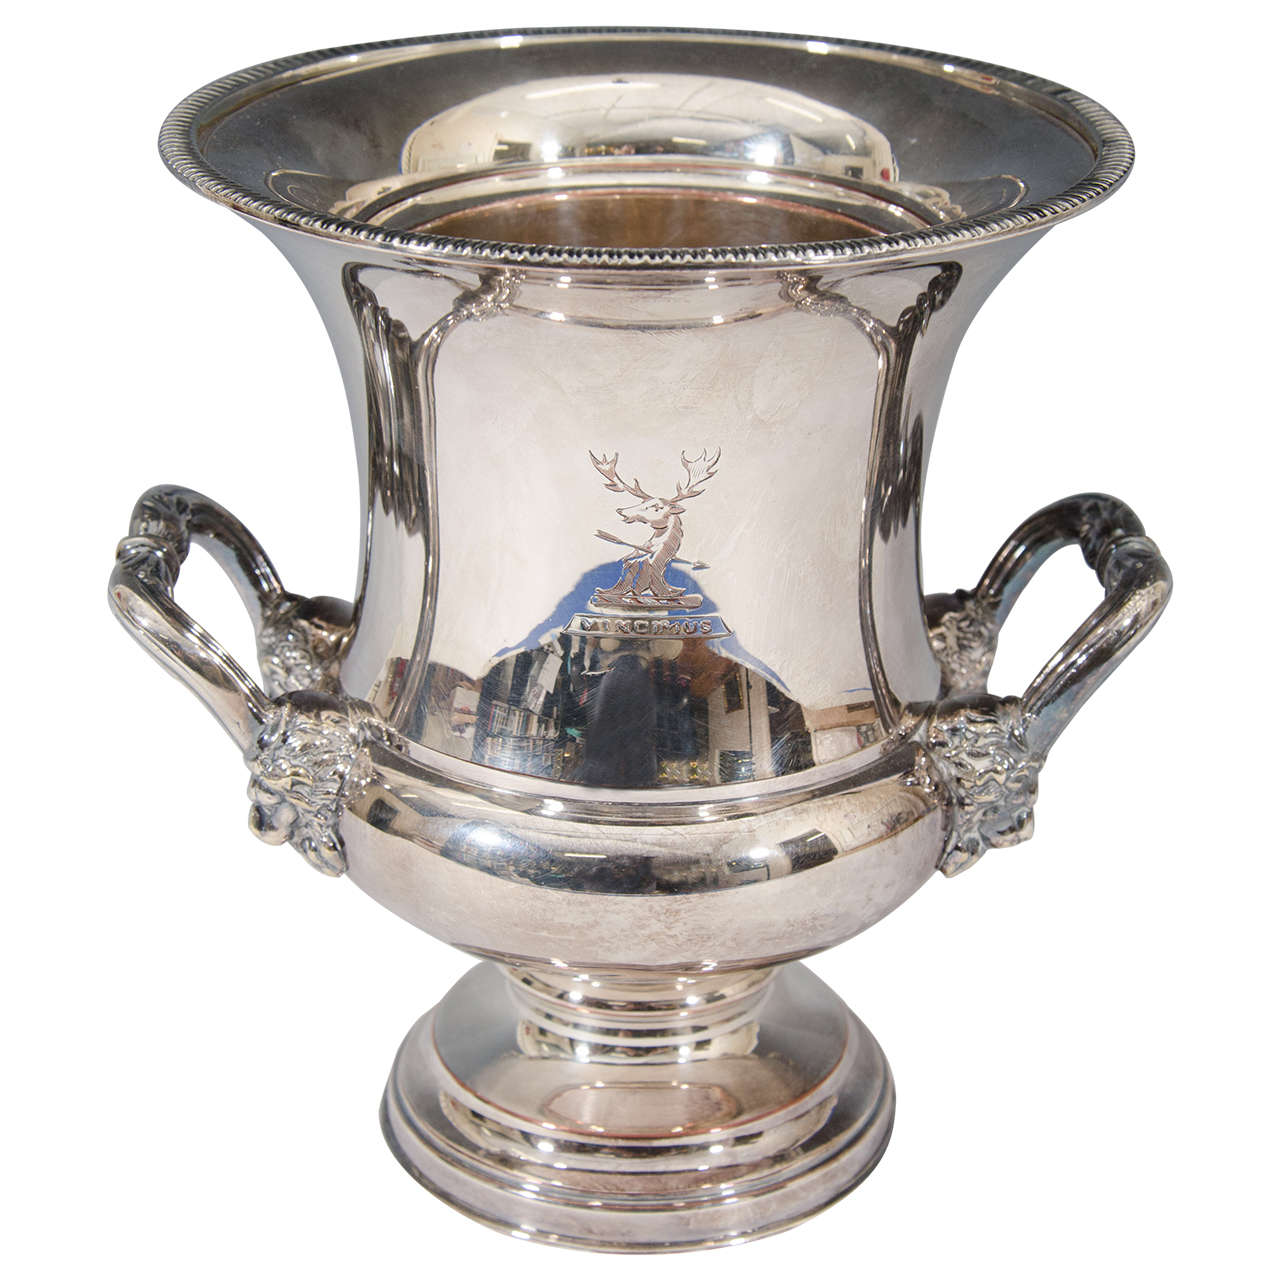 Vintage Silver Plate Ice Bucket Or Champagne Cooler At Stdibs